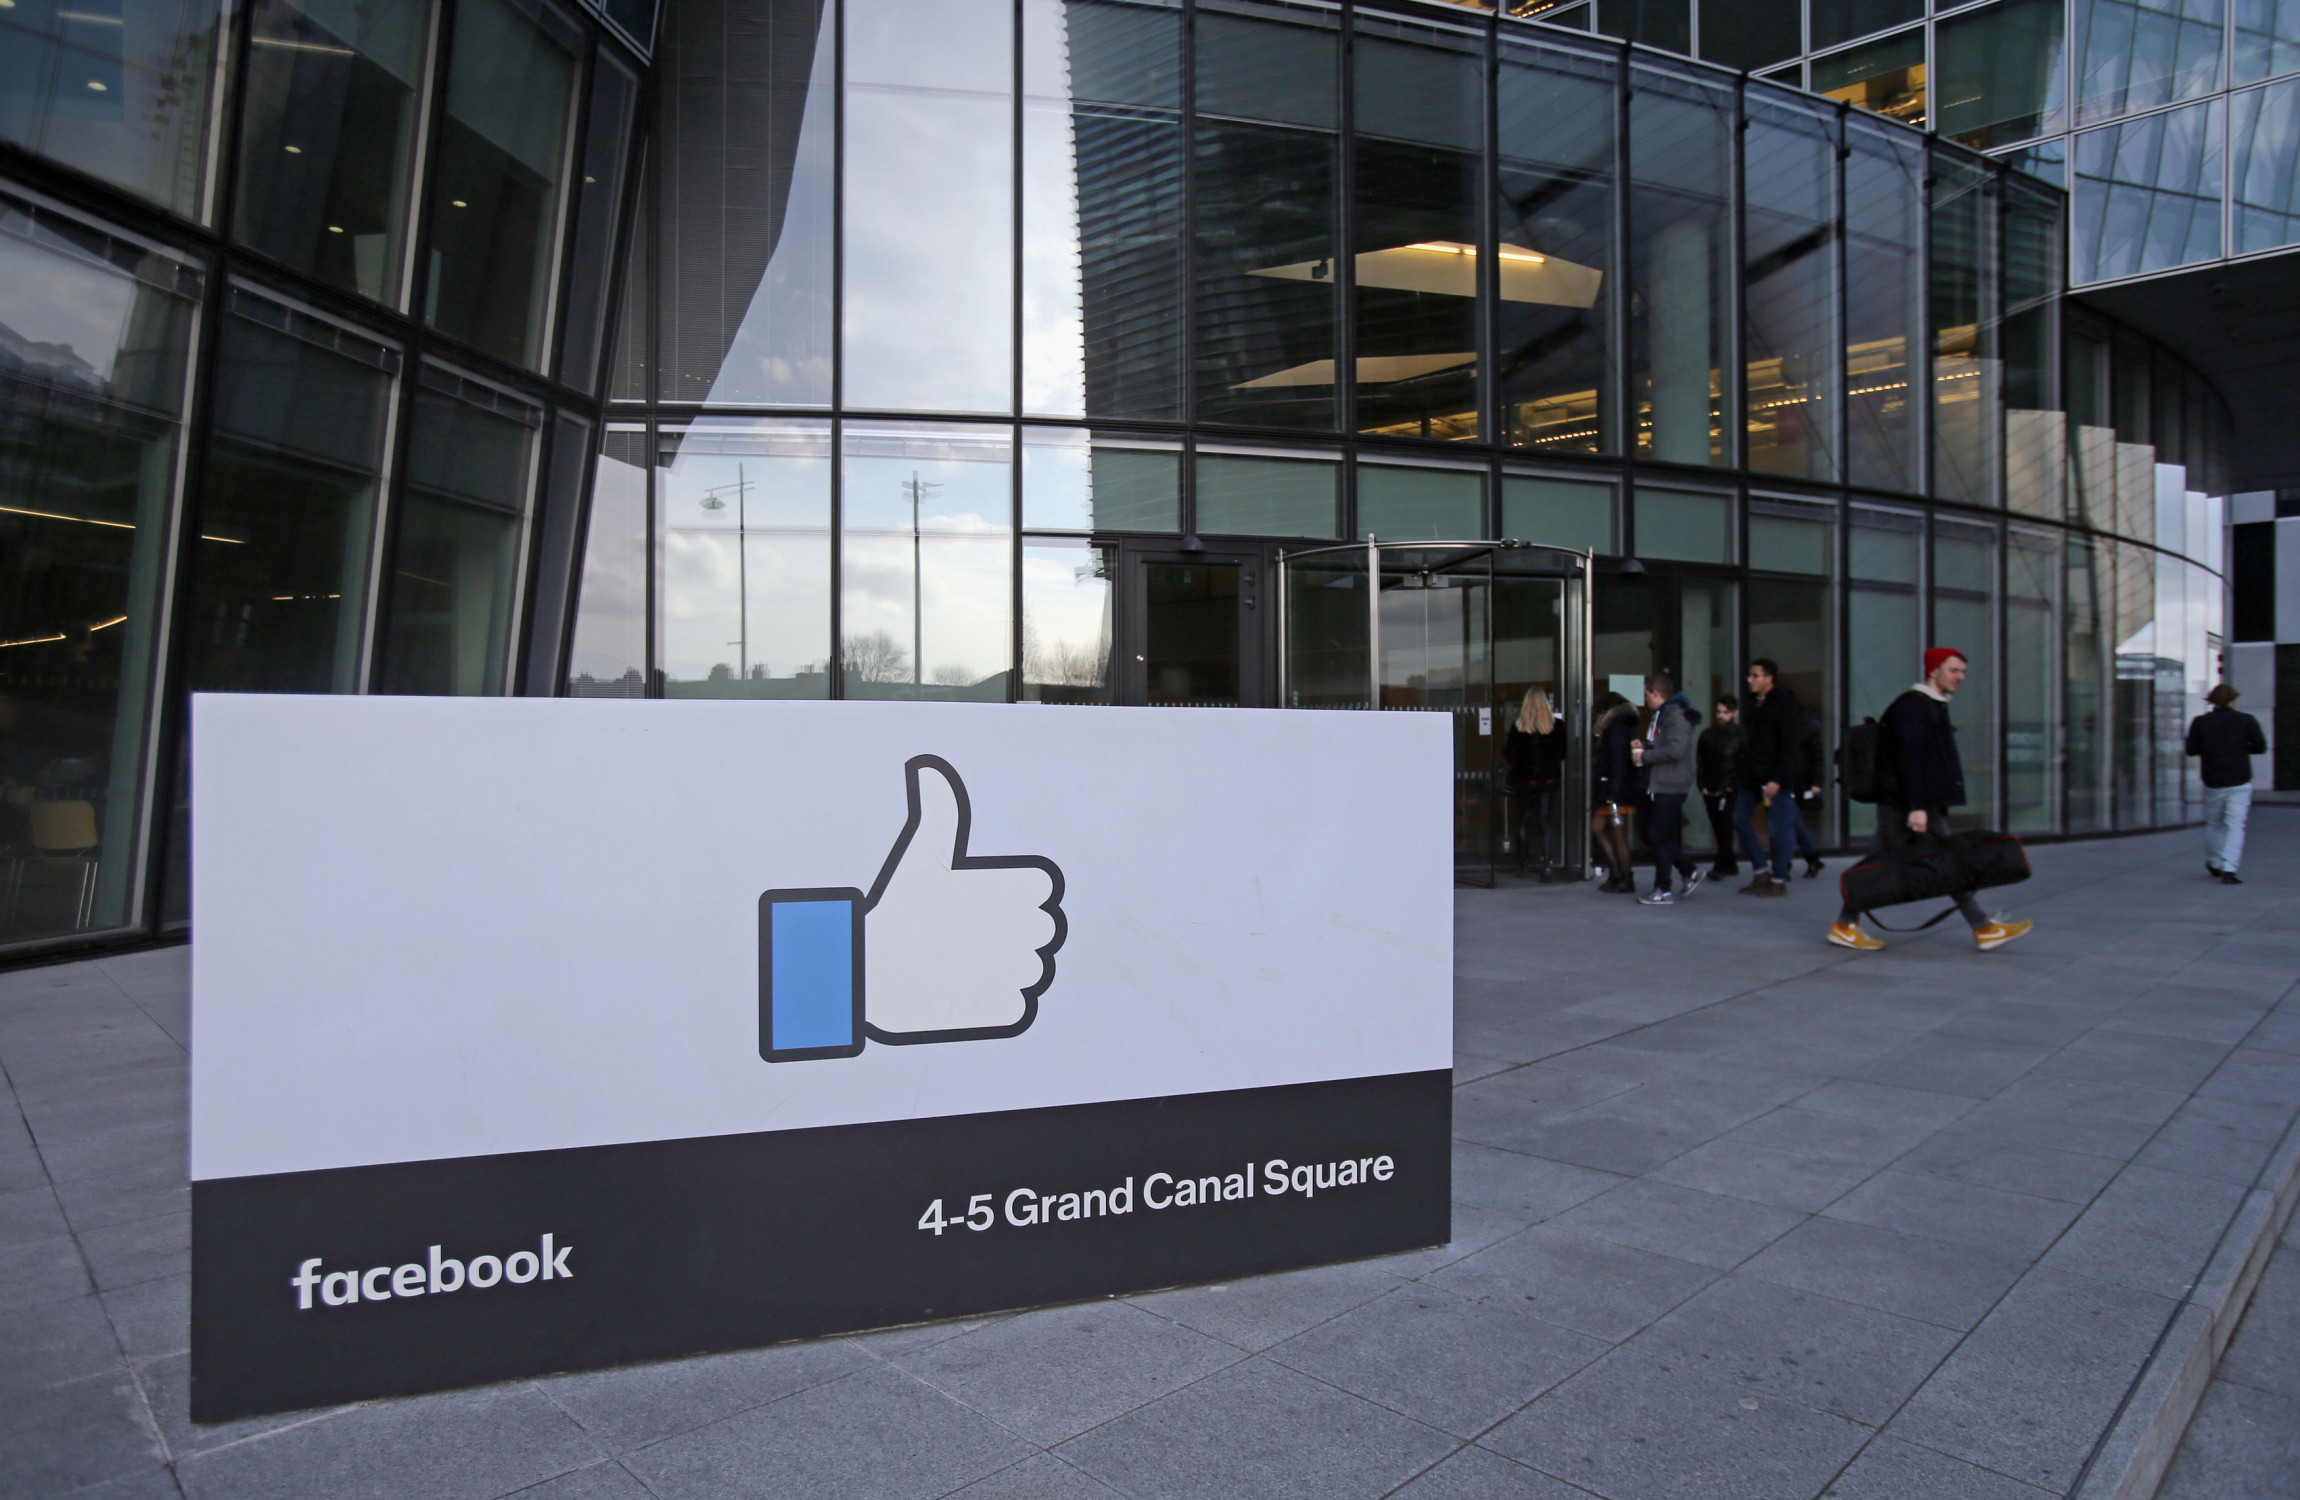 European Union courts to hear case that could hobble Facebook